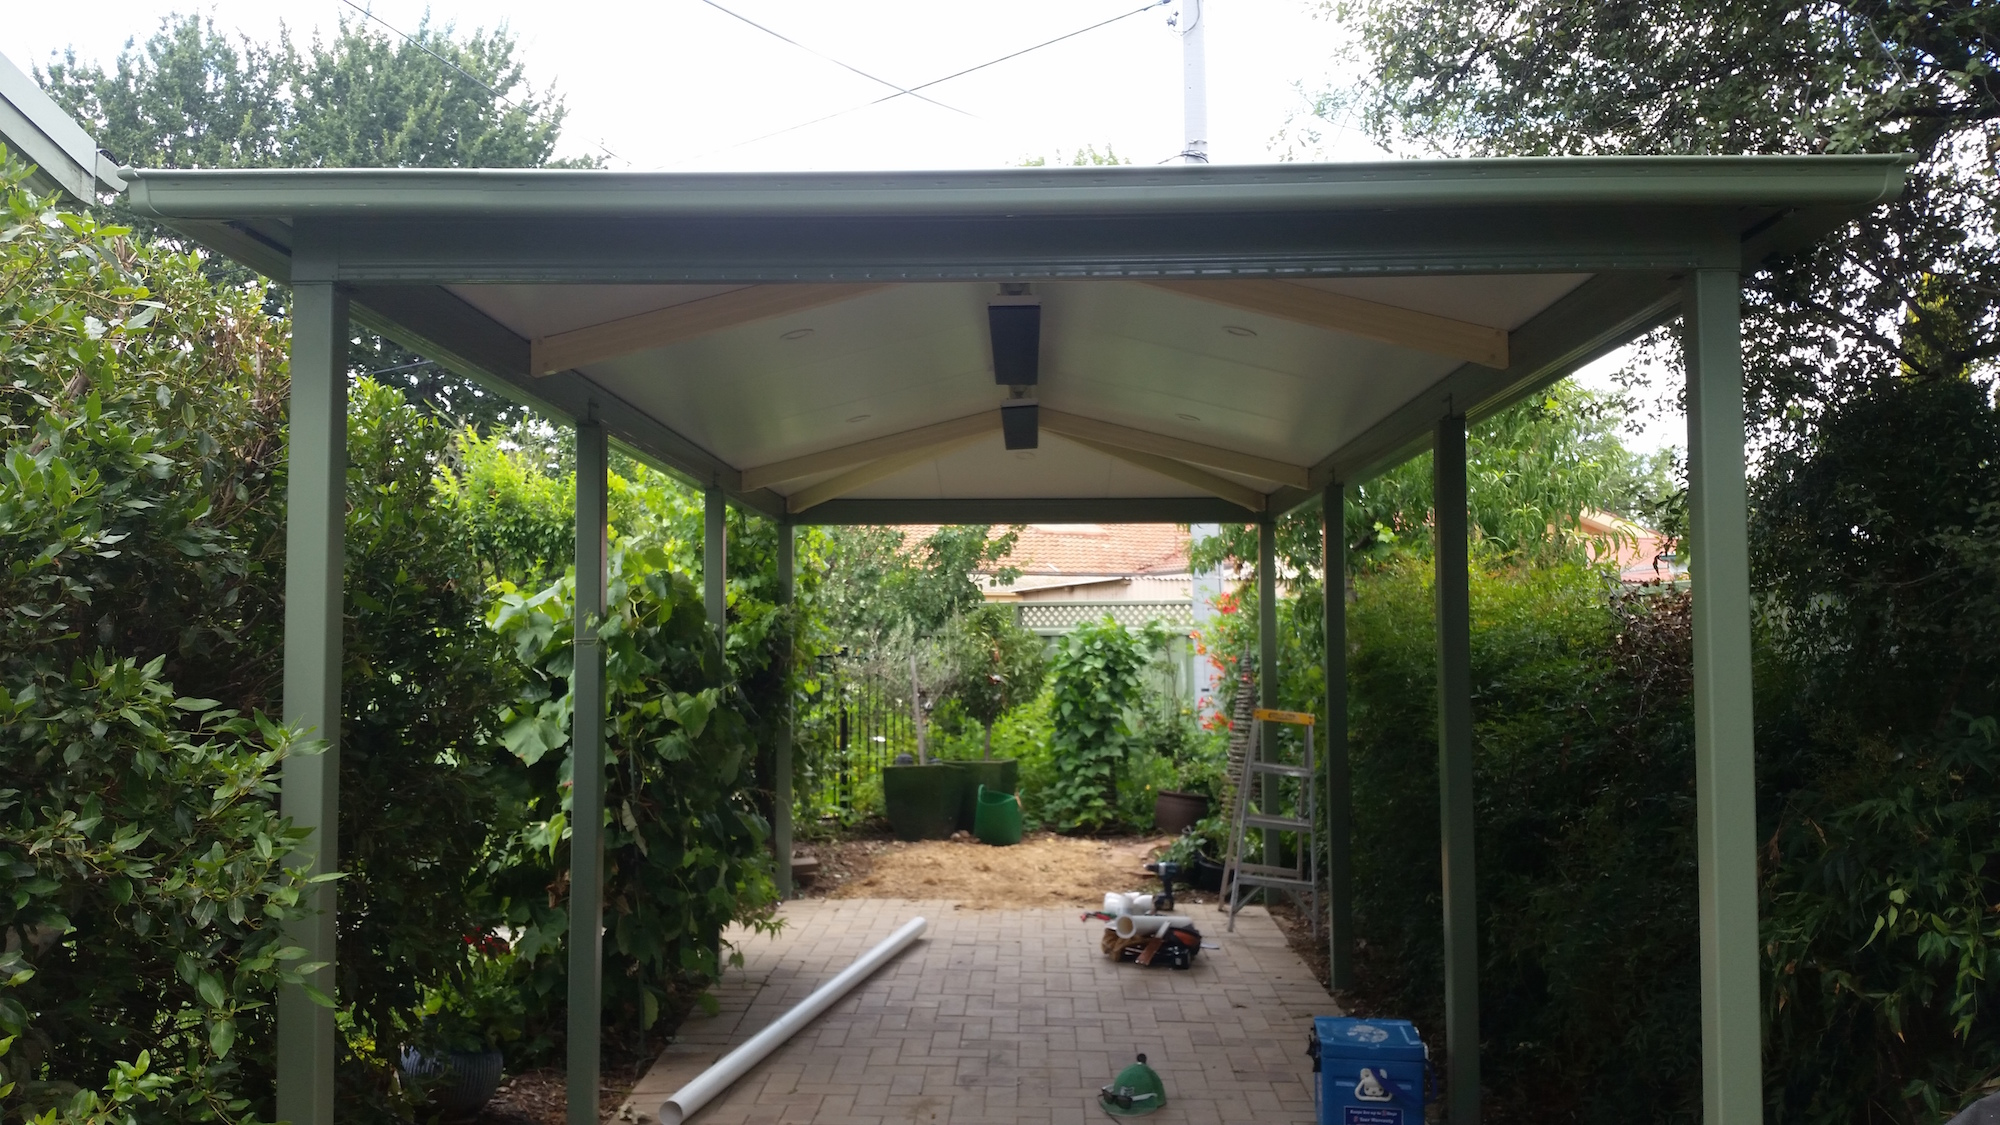 Hipped roof awning outdoor area powdercoated